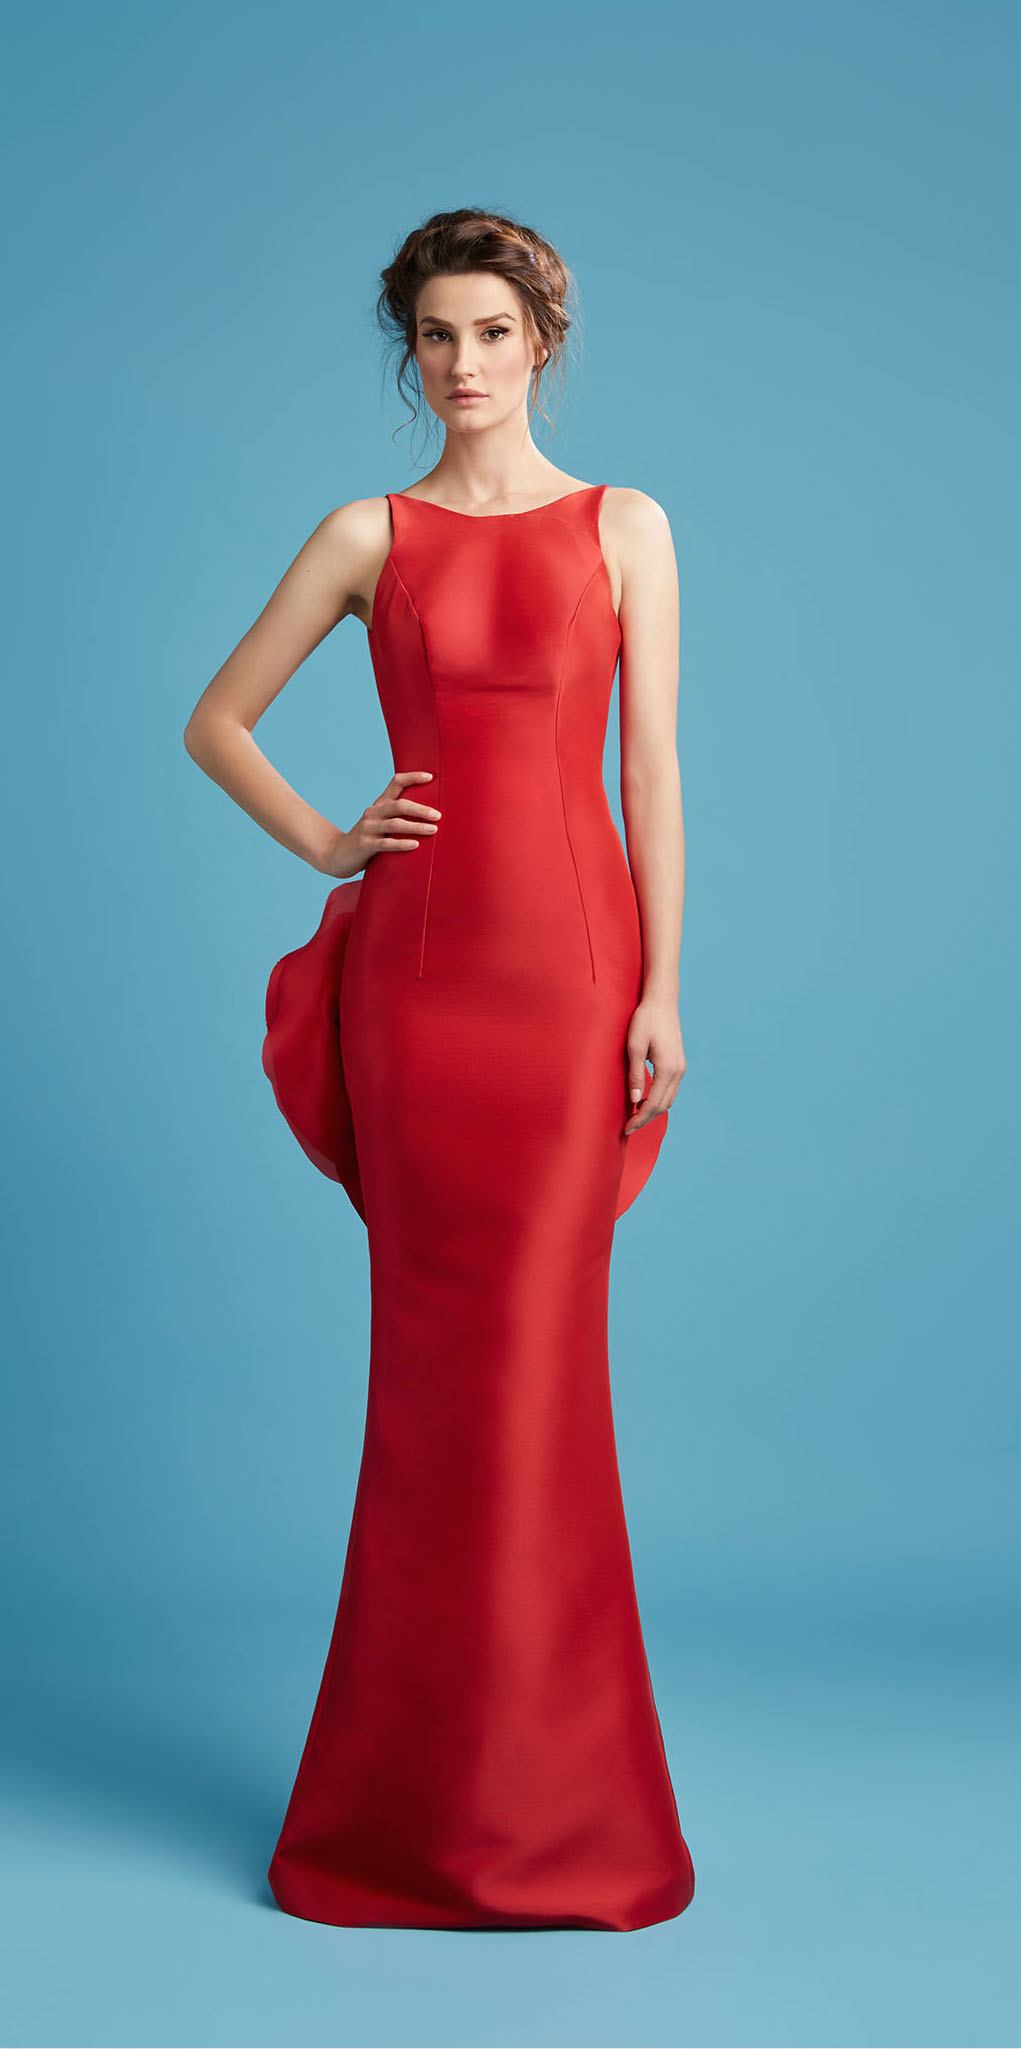 red bridesmaid dress hamda al fahim